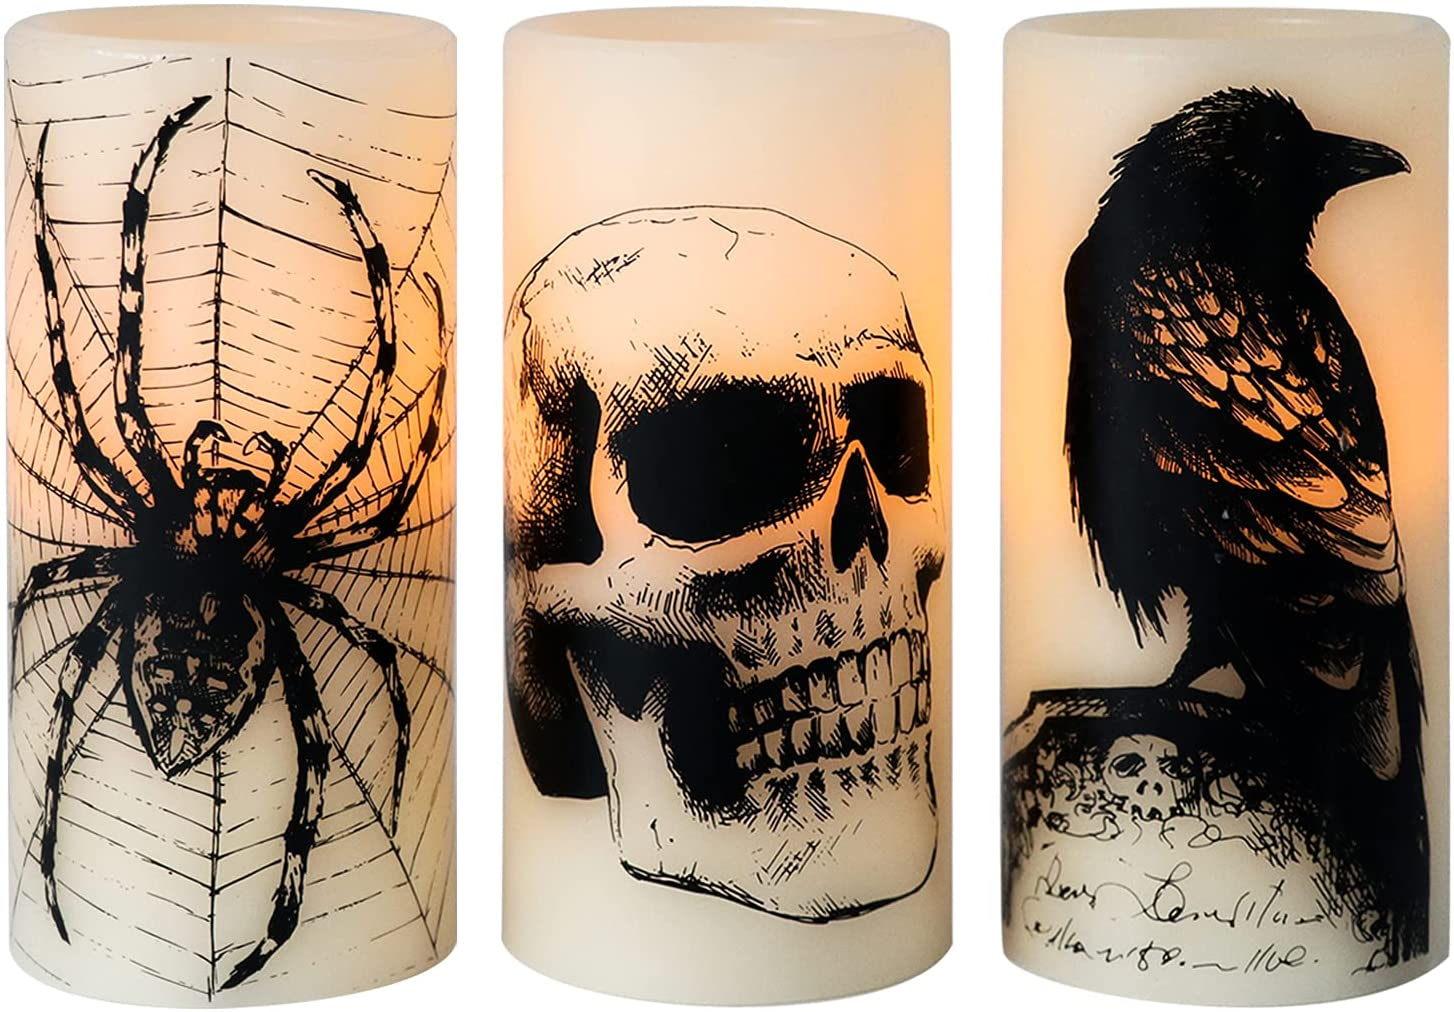 Eldnacele Halloween Flickering Candles with Skull, Spider Web, Crow Raven Decals Set of 3, Battery Operated Halloween Themed LED Candles Horror Spooky Decoration